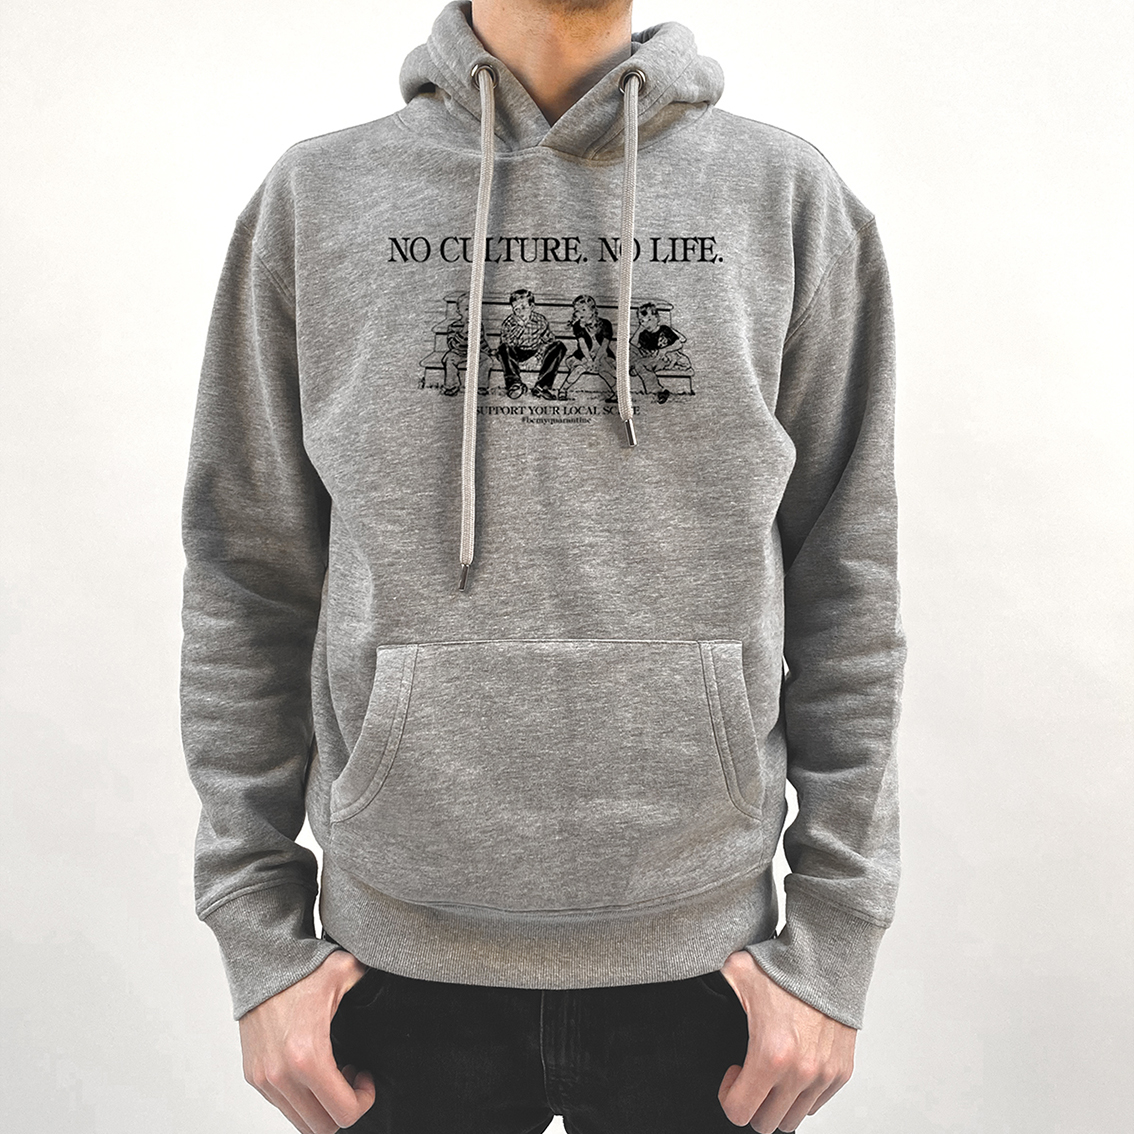 Tourhafen Be My Quarantine - No Culture, No Life Hoodie heather gray